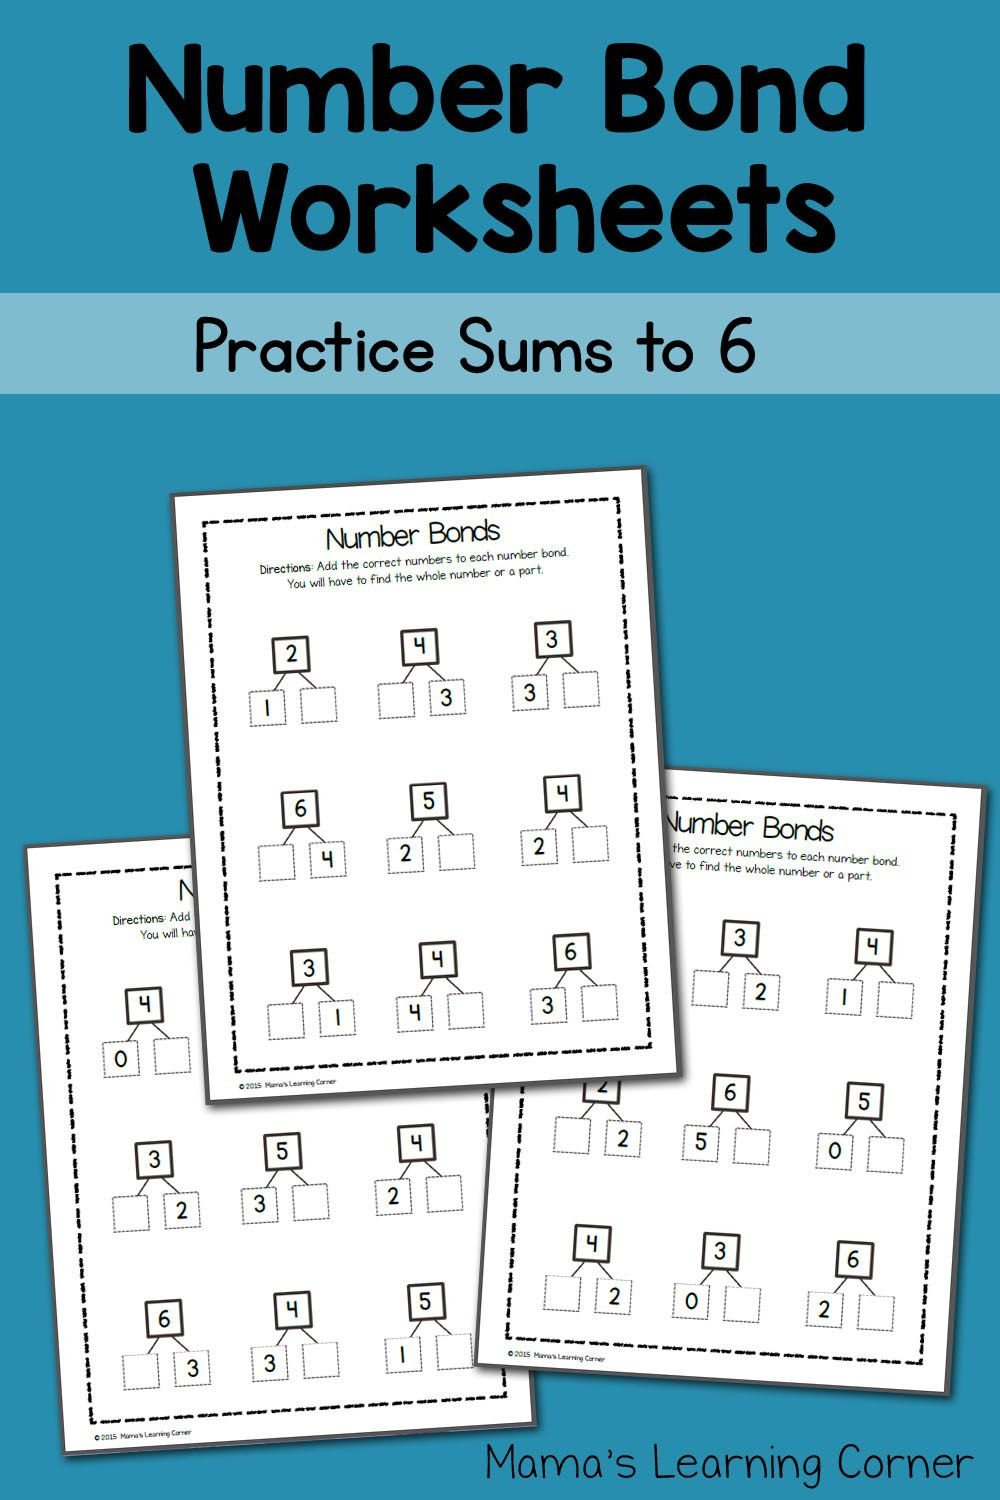 Number Bond Worksheets: Sums to 6 | Elementary School Teacher Ideas ...